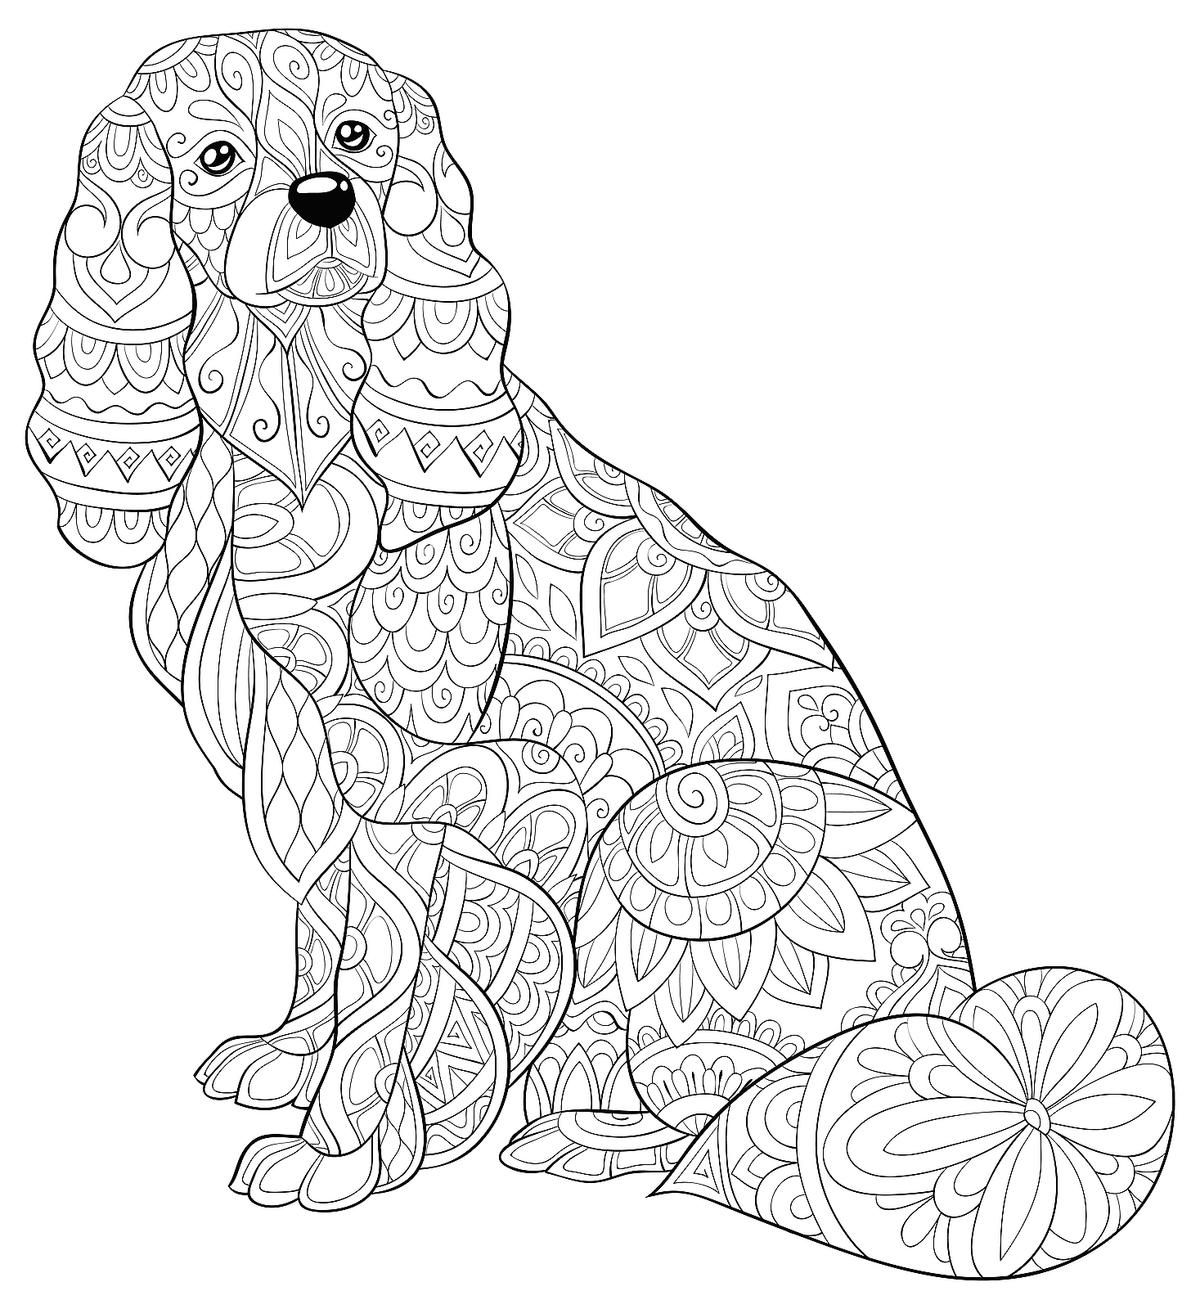 Dog Coloring Pages Free Printable Coloring Pages Of Dogs For Dog Lovers Of All Ages Printables 30seconds Mom Dog Coloring Page Dog Coloring Book Puppy Coloring Pages [ 1309 x 1200 Pixel ]